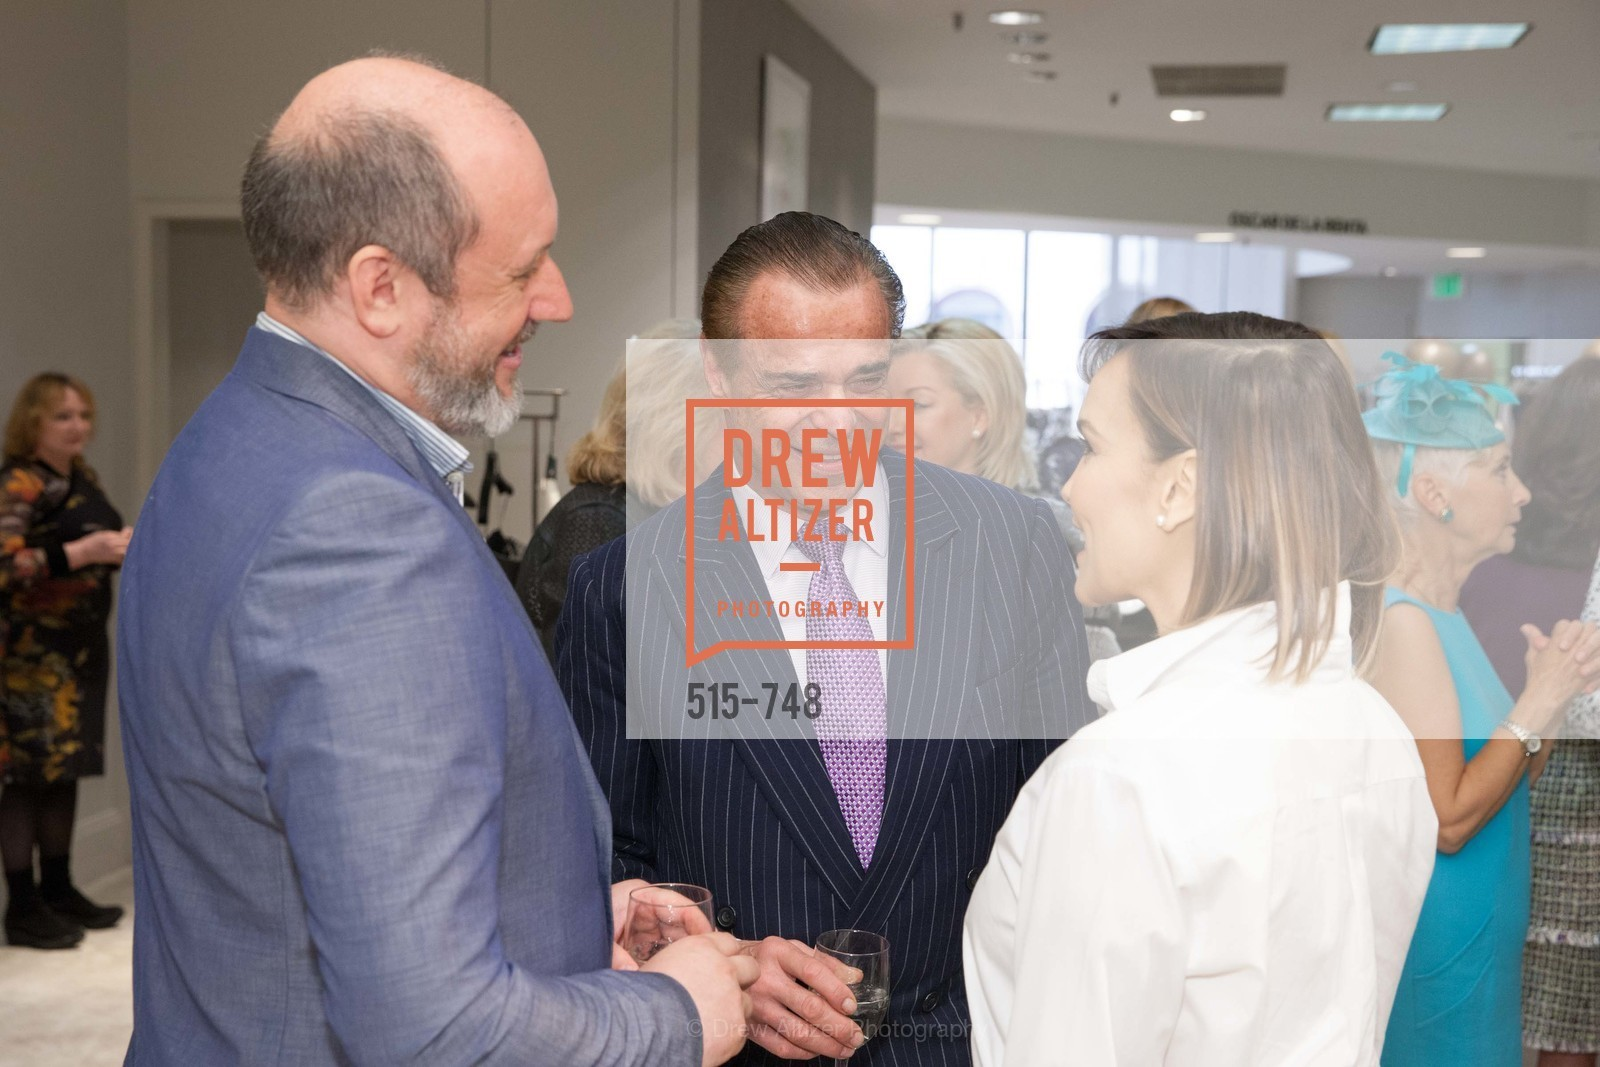 Peter Copping, Boaz Mazor, Lora DuBain, PETER COPPING Makes Personal Appearance at SAKS FIFTH AVENUE, US, May 21st, 2015,Drew Altizer, Drew Altizer Photography, full-service agency, private events, San Francisco photographer, photographer california